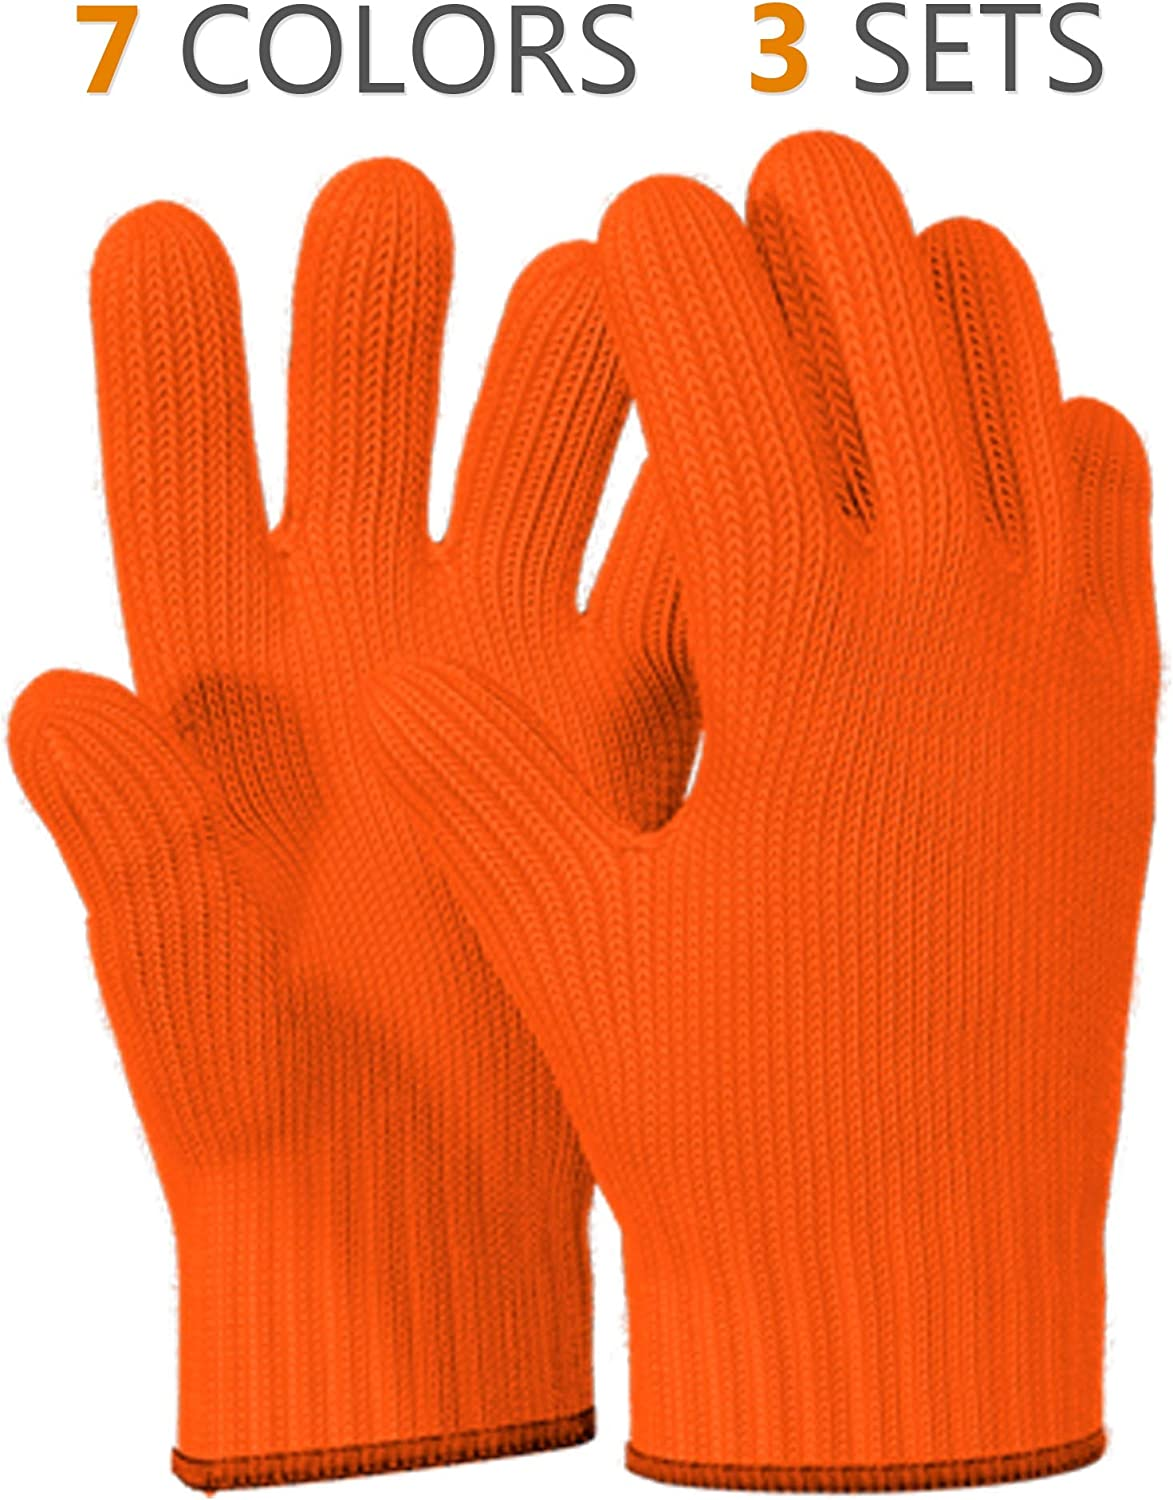 1 PAIR Heat Resistant Gloves Oven Gloves Heat Resistant With Fingers Oven Mitts Kitchen Pot Holders Cotton Gloves Kitchen Gloves Double Oven Mitt Set Oven Gloves With Fingers (Orange, 2 pcs)